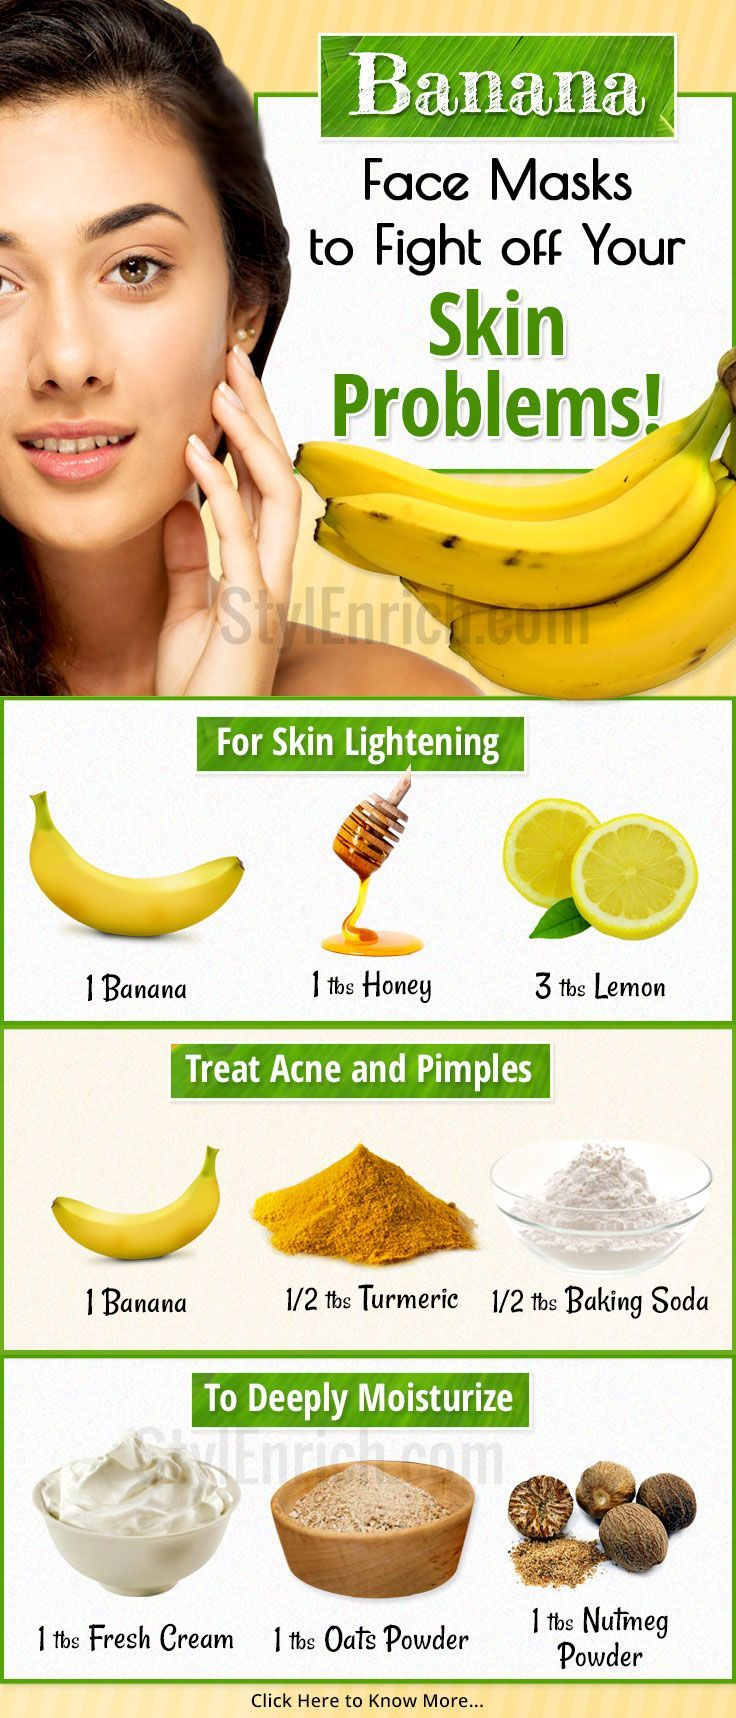 #Bananas are known for its wonderful nutritive value all over the world. Bananas are good for your health. We bring just for you 5 absolutely stunning homemade banana #FaceMasks.